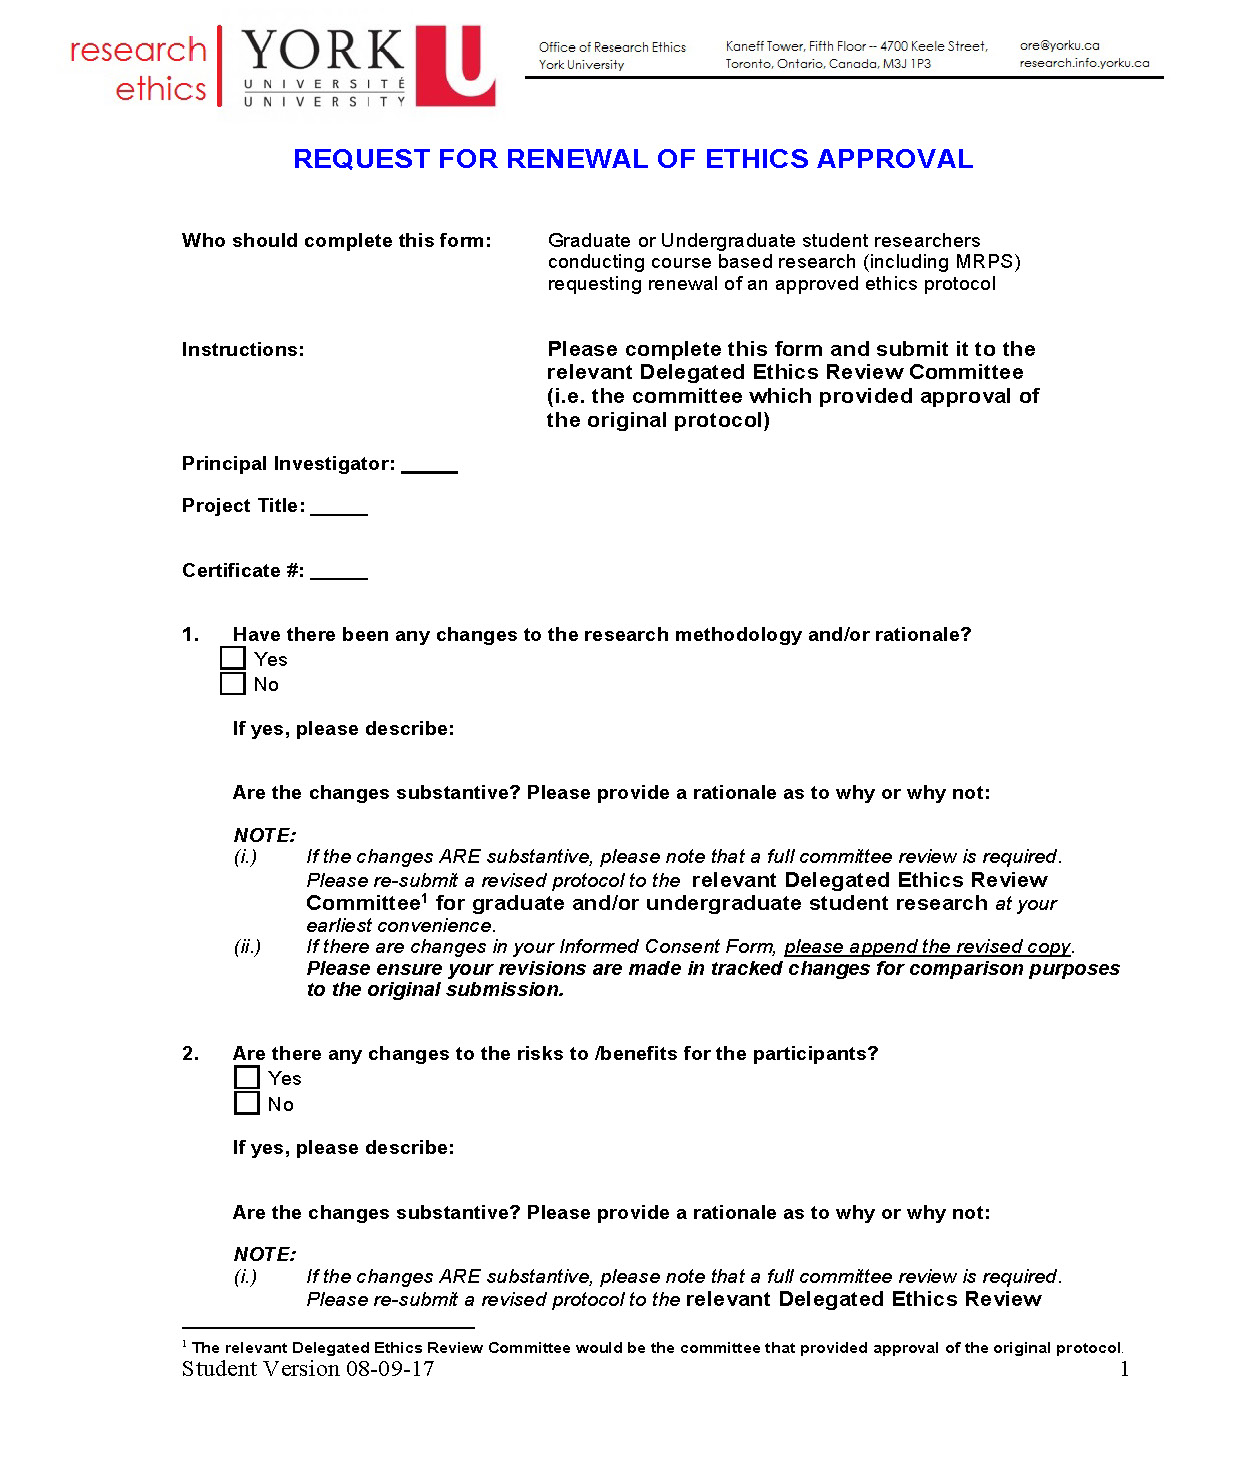 full-size image of the request for renewal of ethic approval form from research ethics page 1